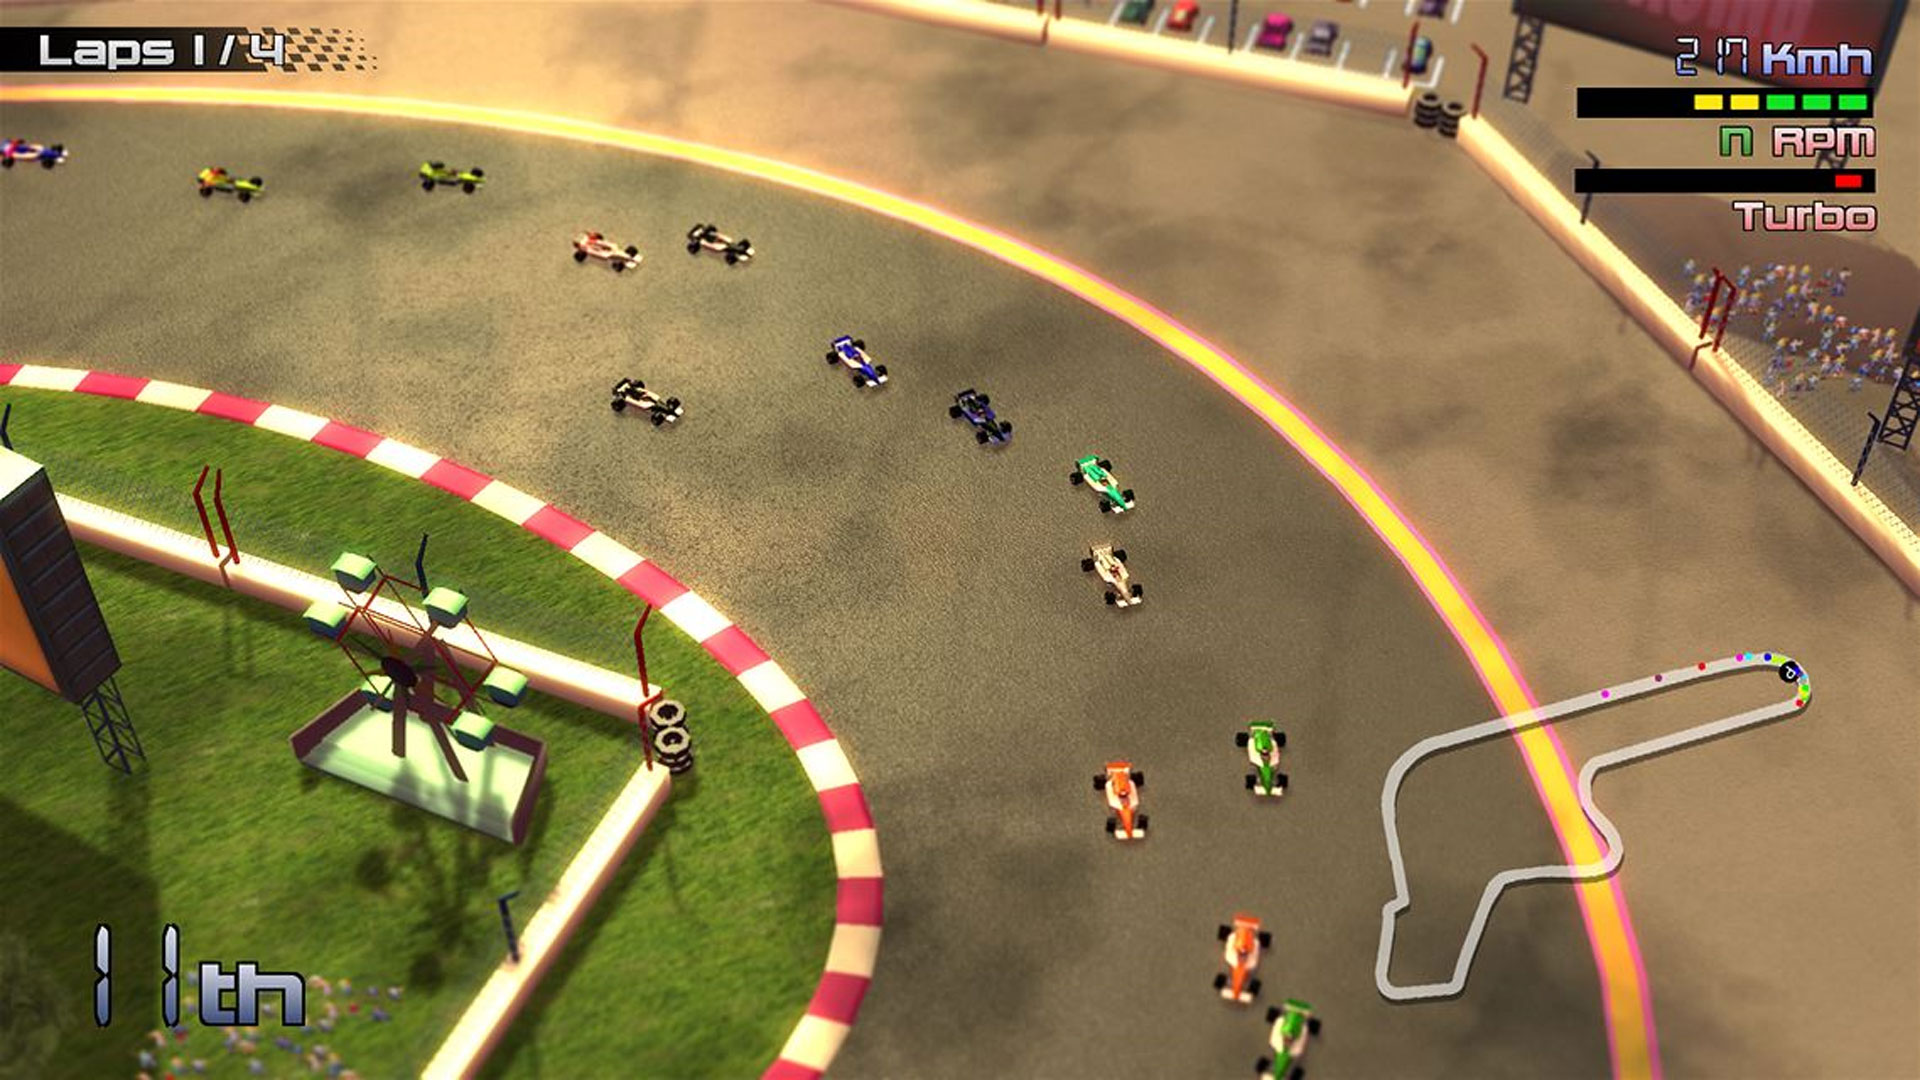 Grand Prix Rock 'N Racing Nintendo Switch Screenshot